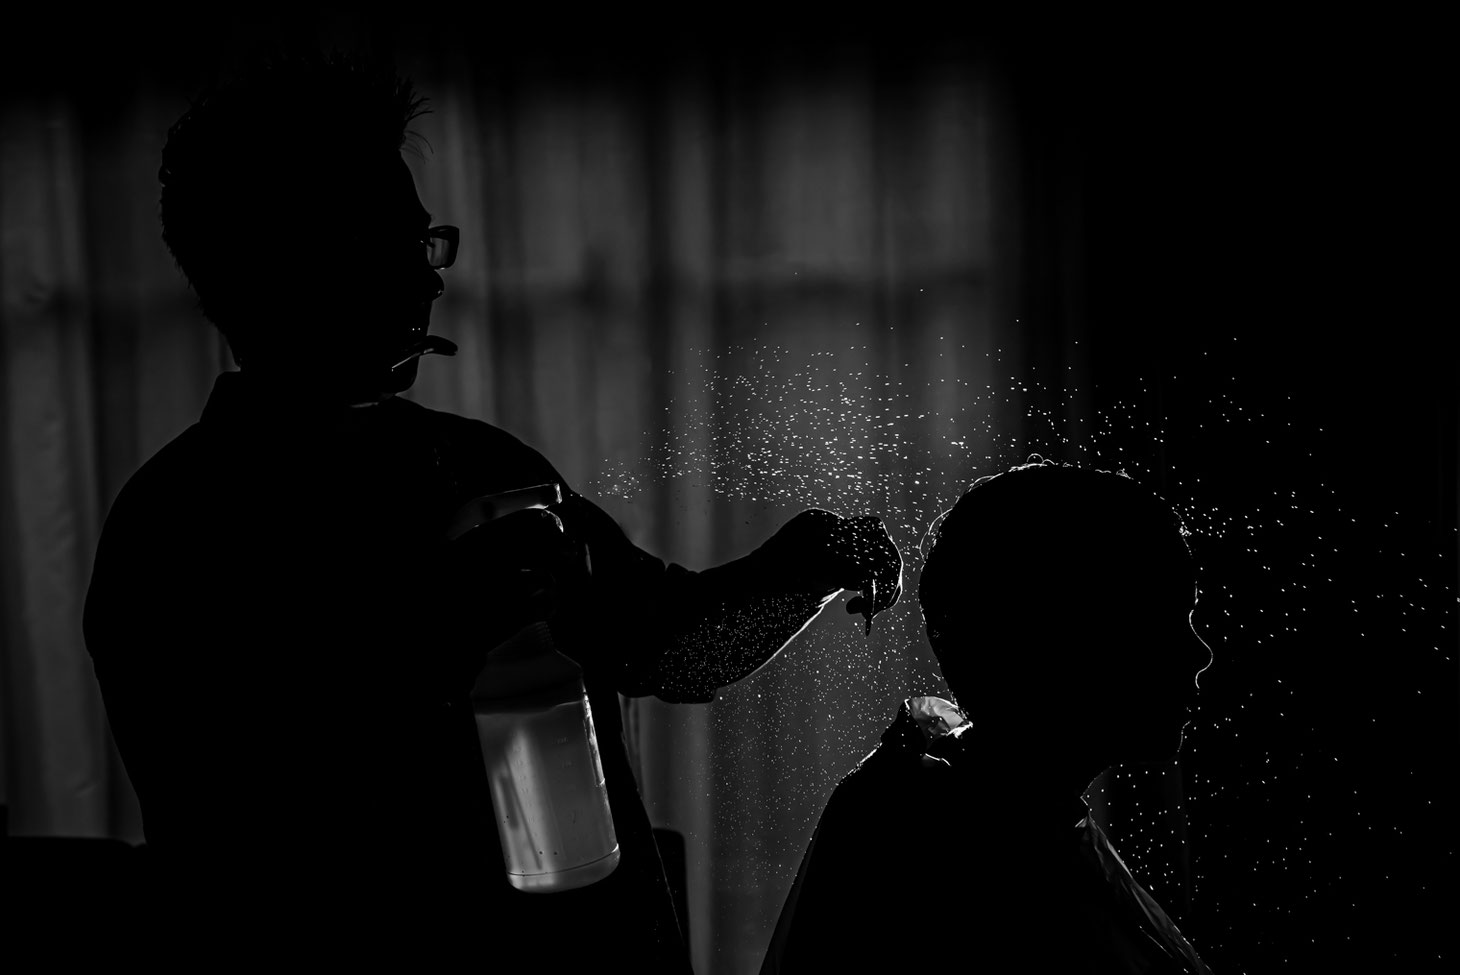 Black and white photo of mom giving child a haircut. Photo is backlit with child and mom in shadow and water droplets visible